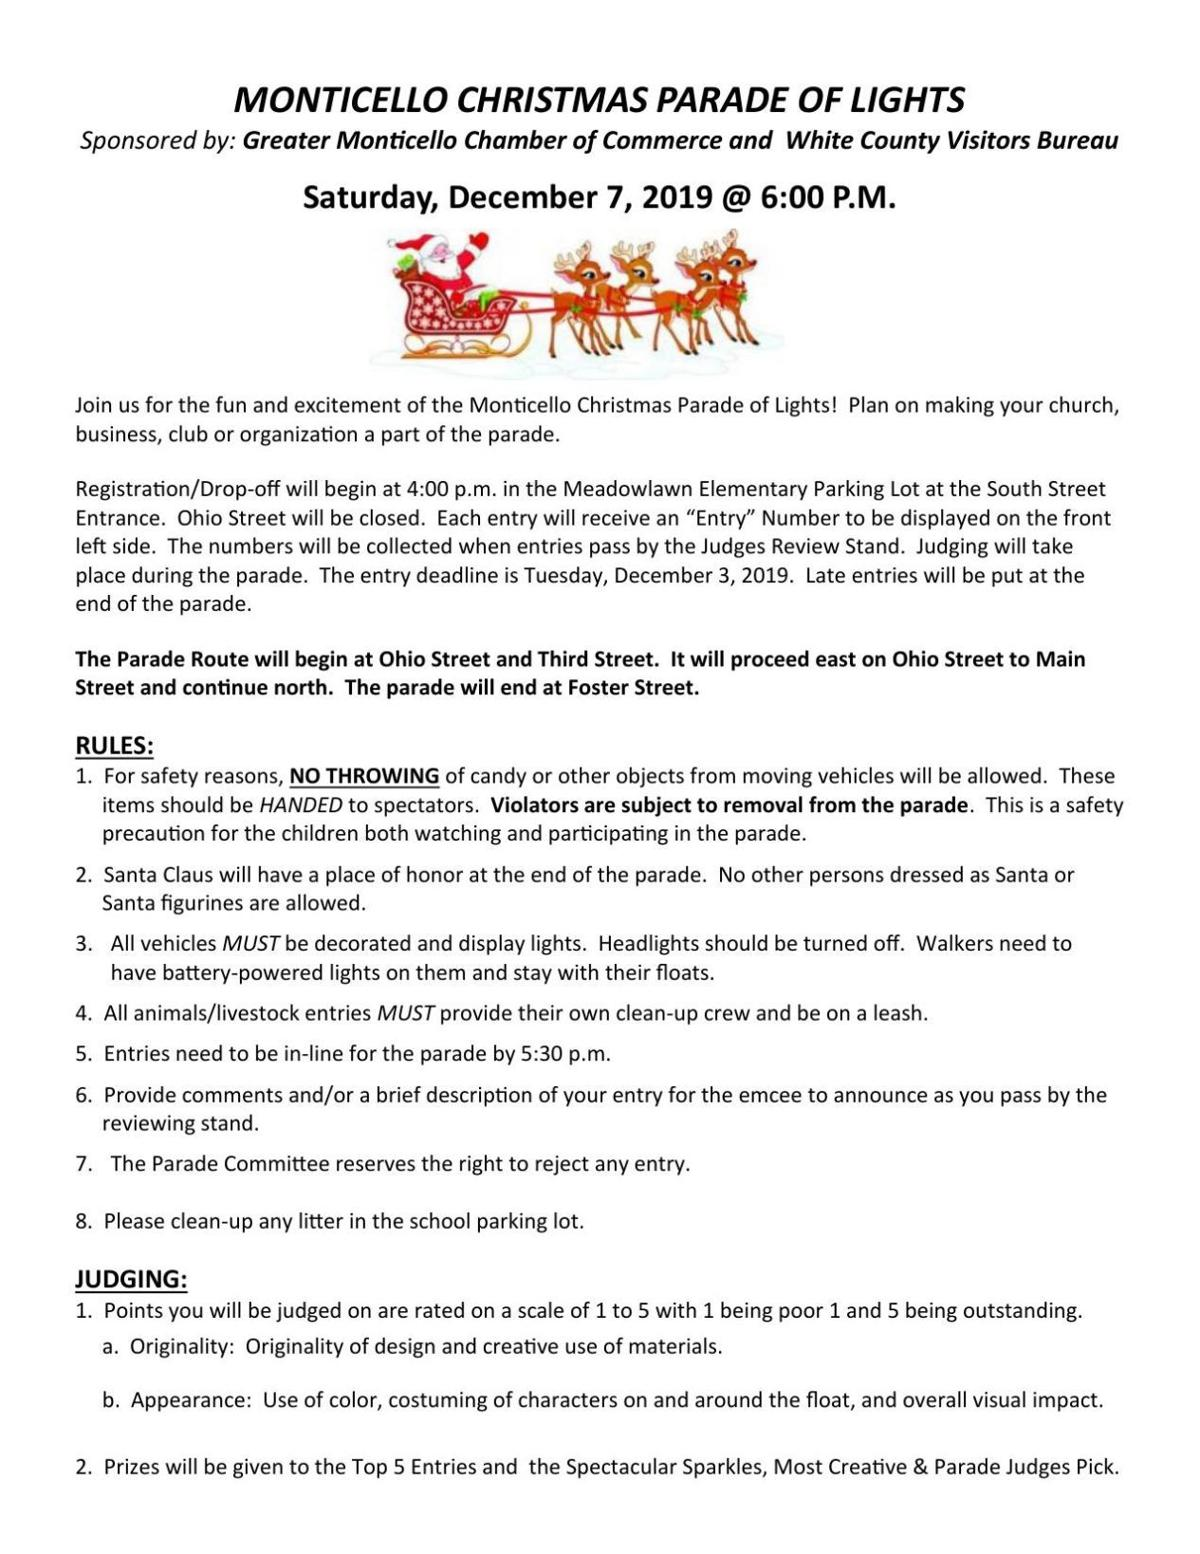 Download the parade rules and registration form